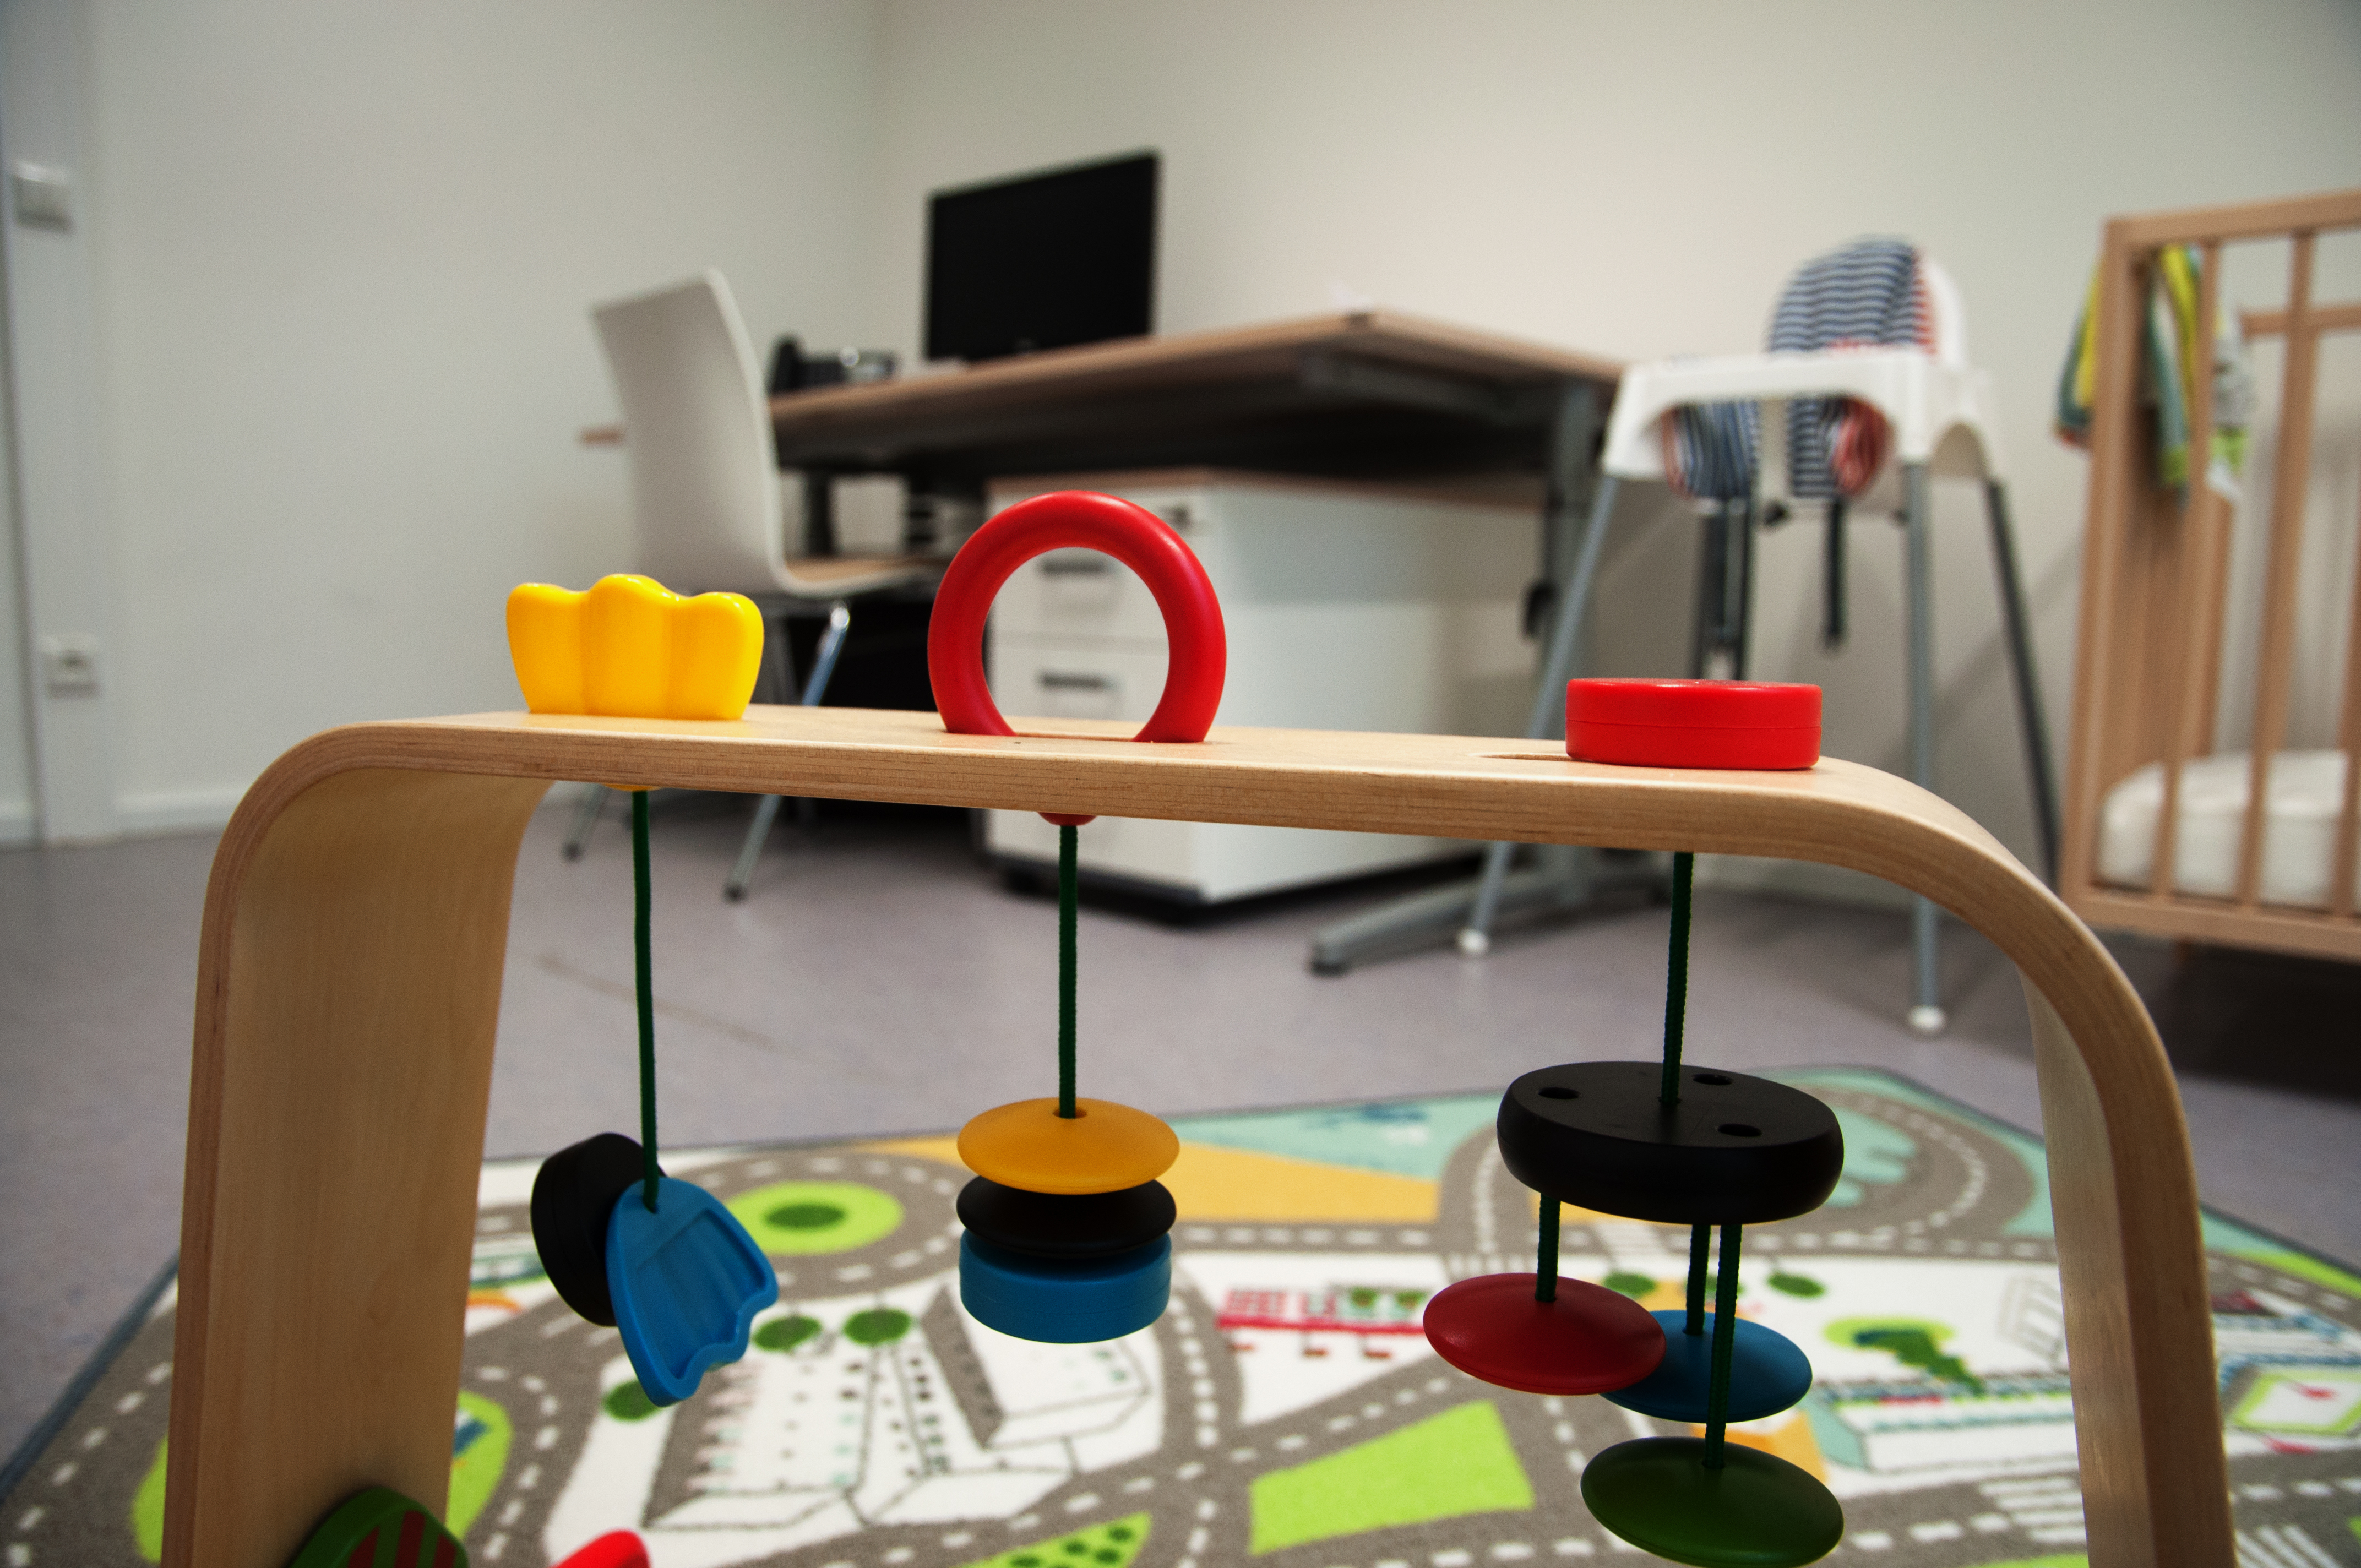 Toys and work zone in the parent-child office